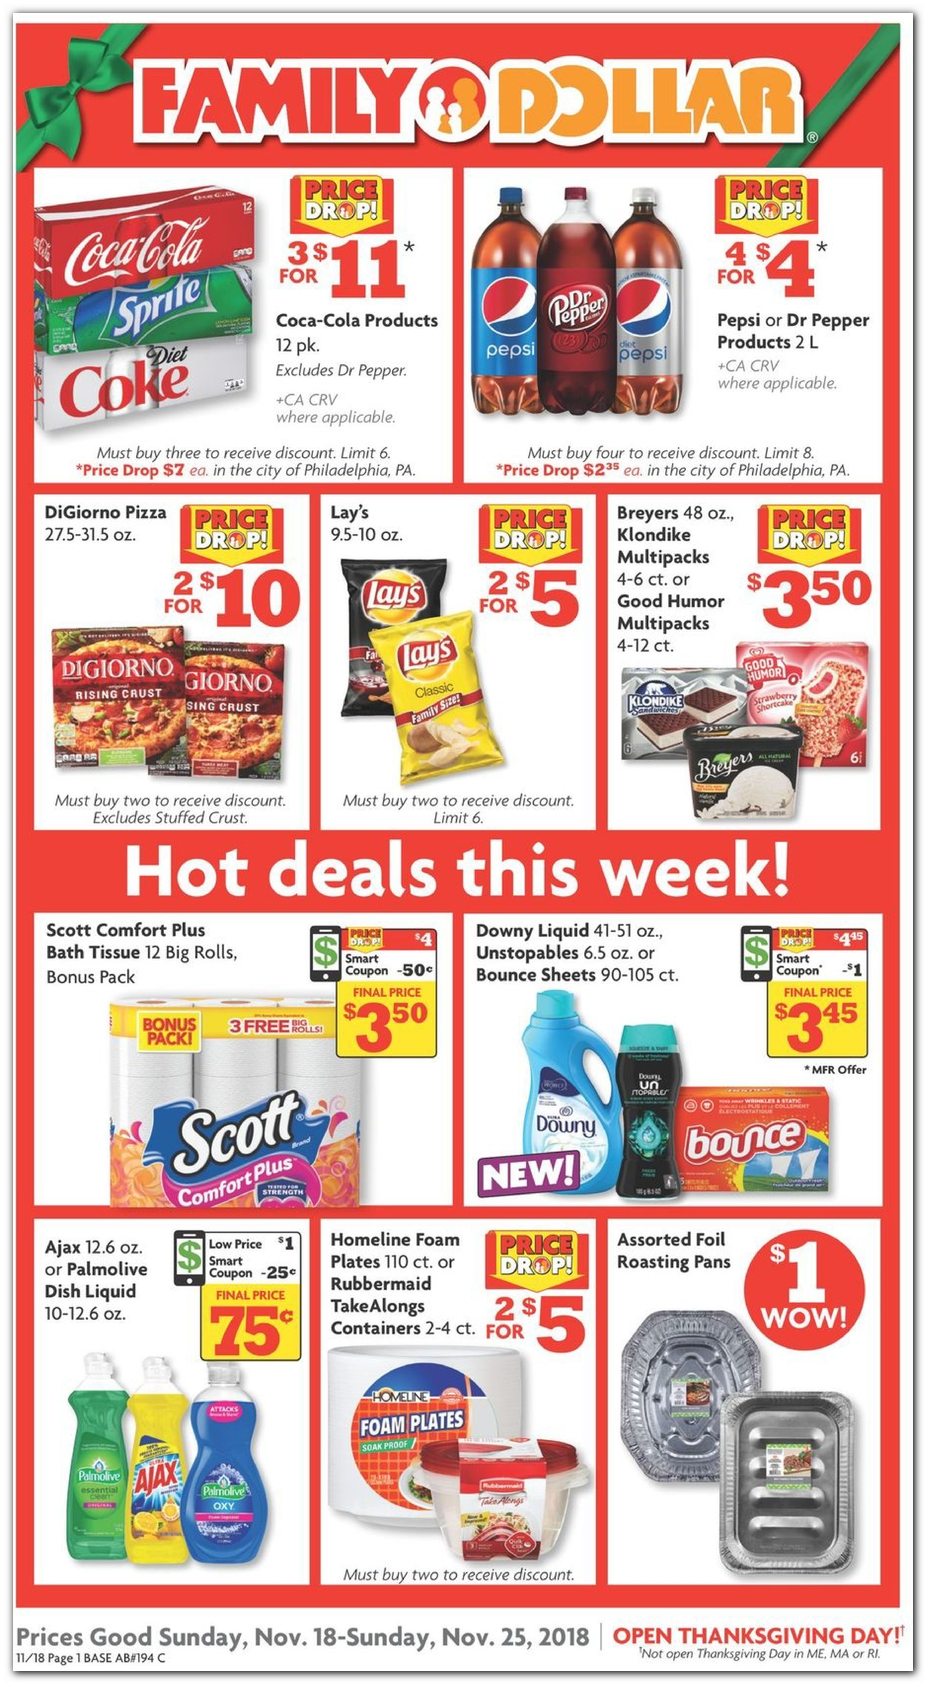 Fleet Farm Coupons >> Family Dollar Black Friday Ads, Sales, Doorbusters, and